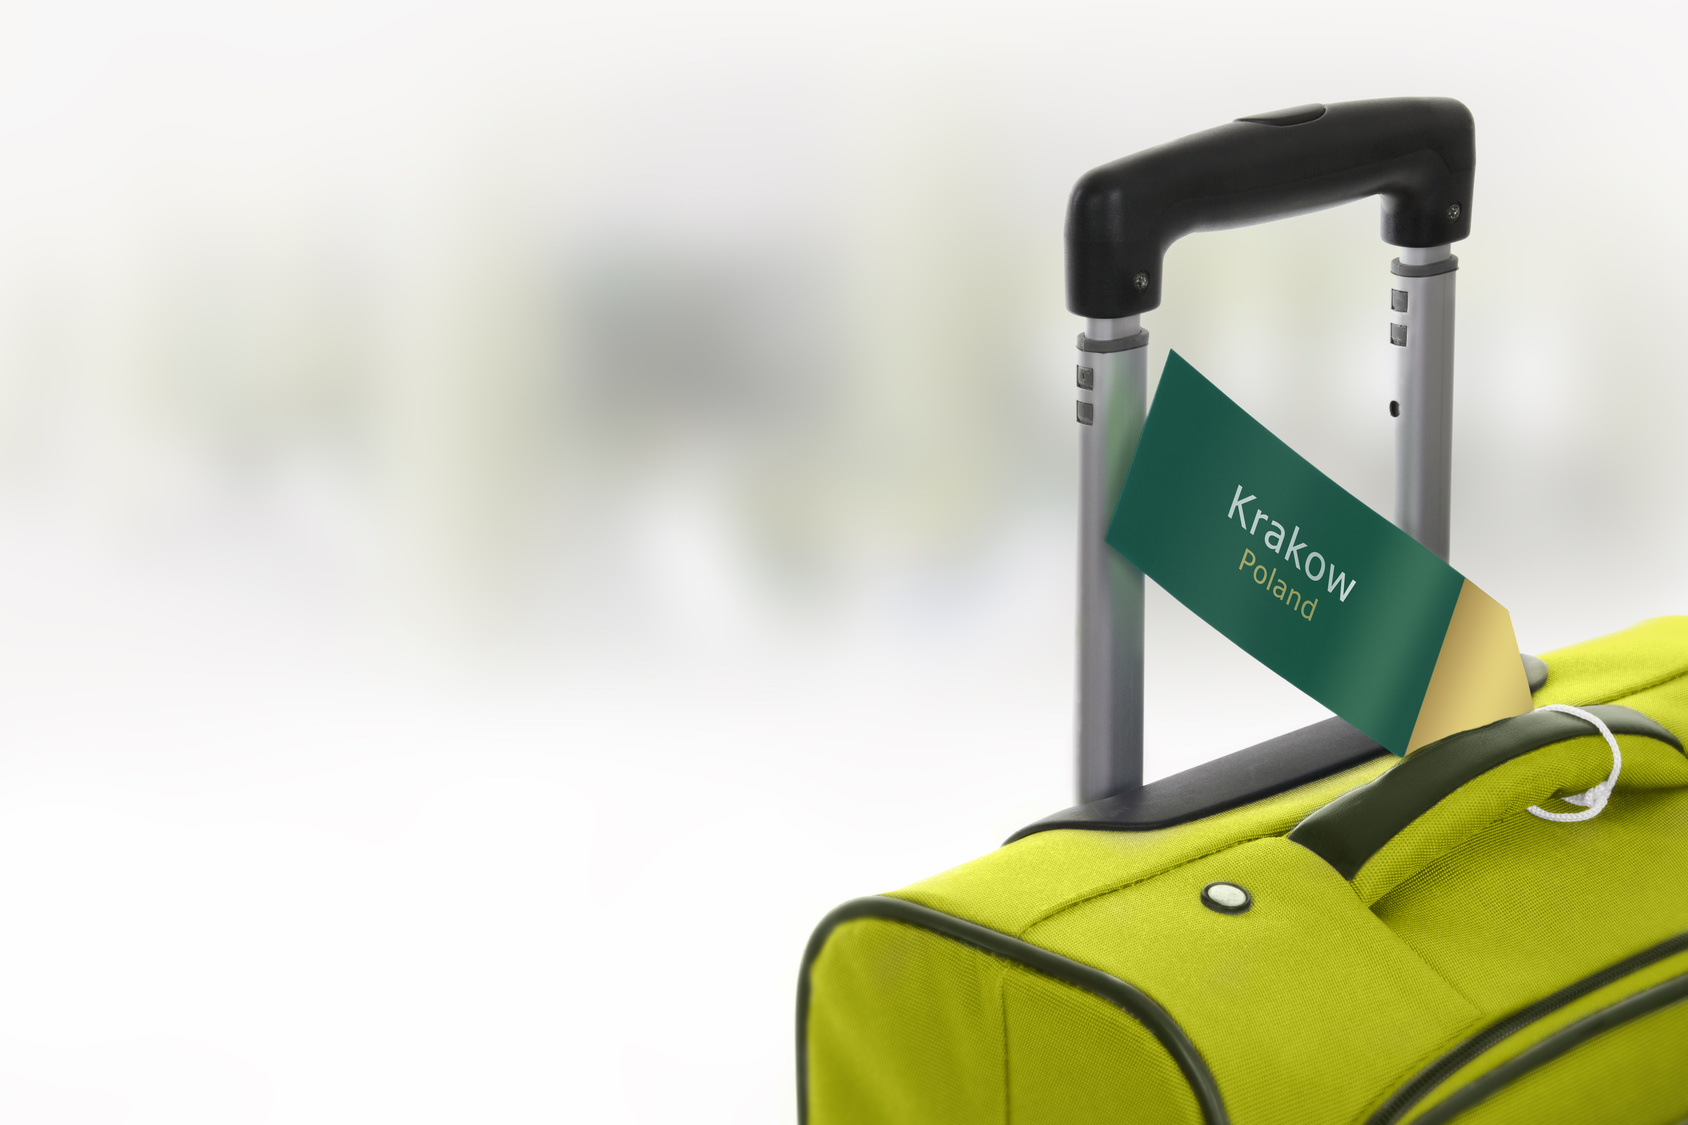 Krakow, Poland. Green suitcase with label at airport.